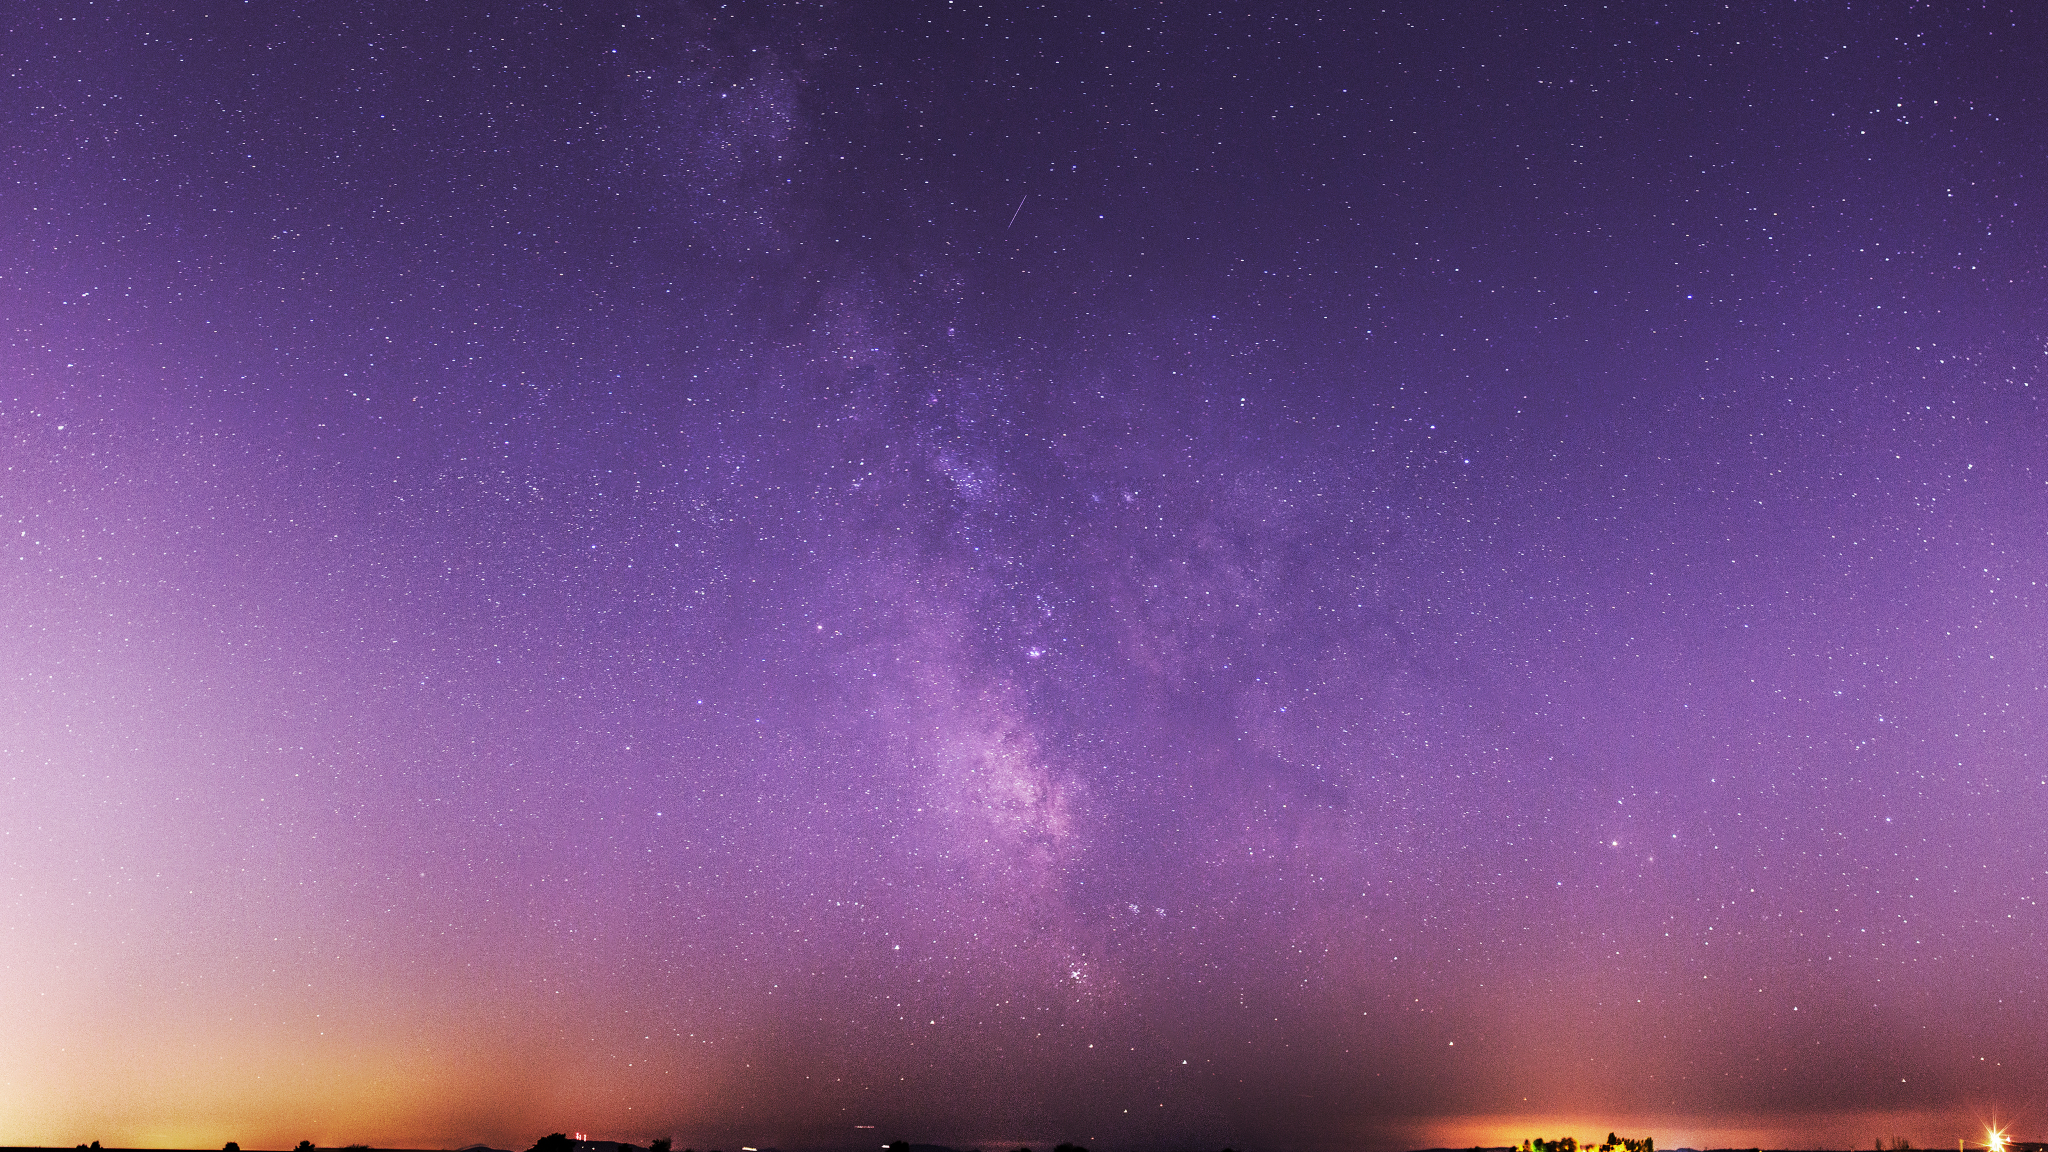 Milky Way Galaxy Purple Night Sky, HD 4K Wallpaper